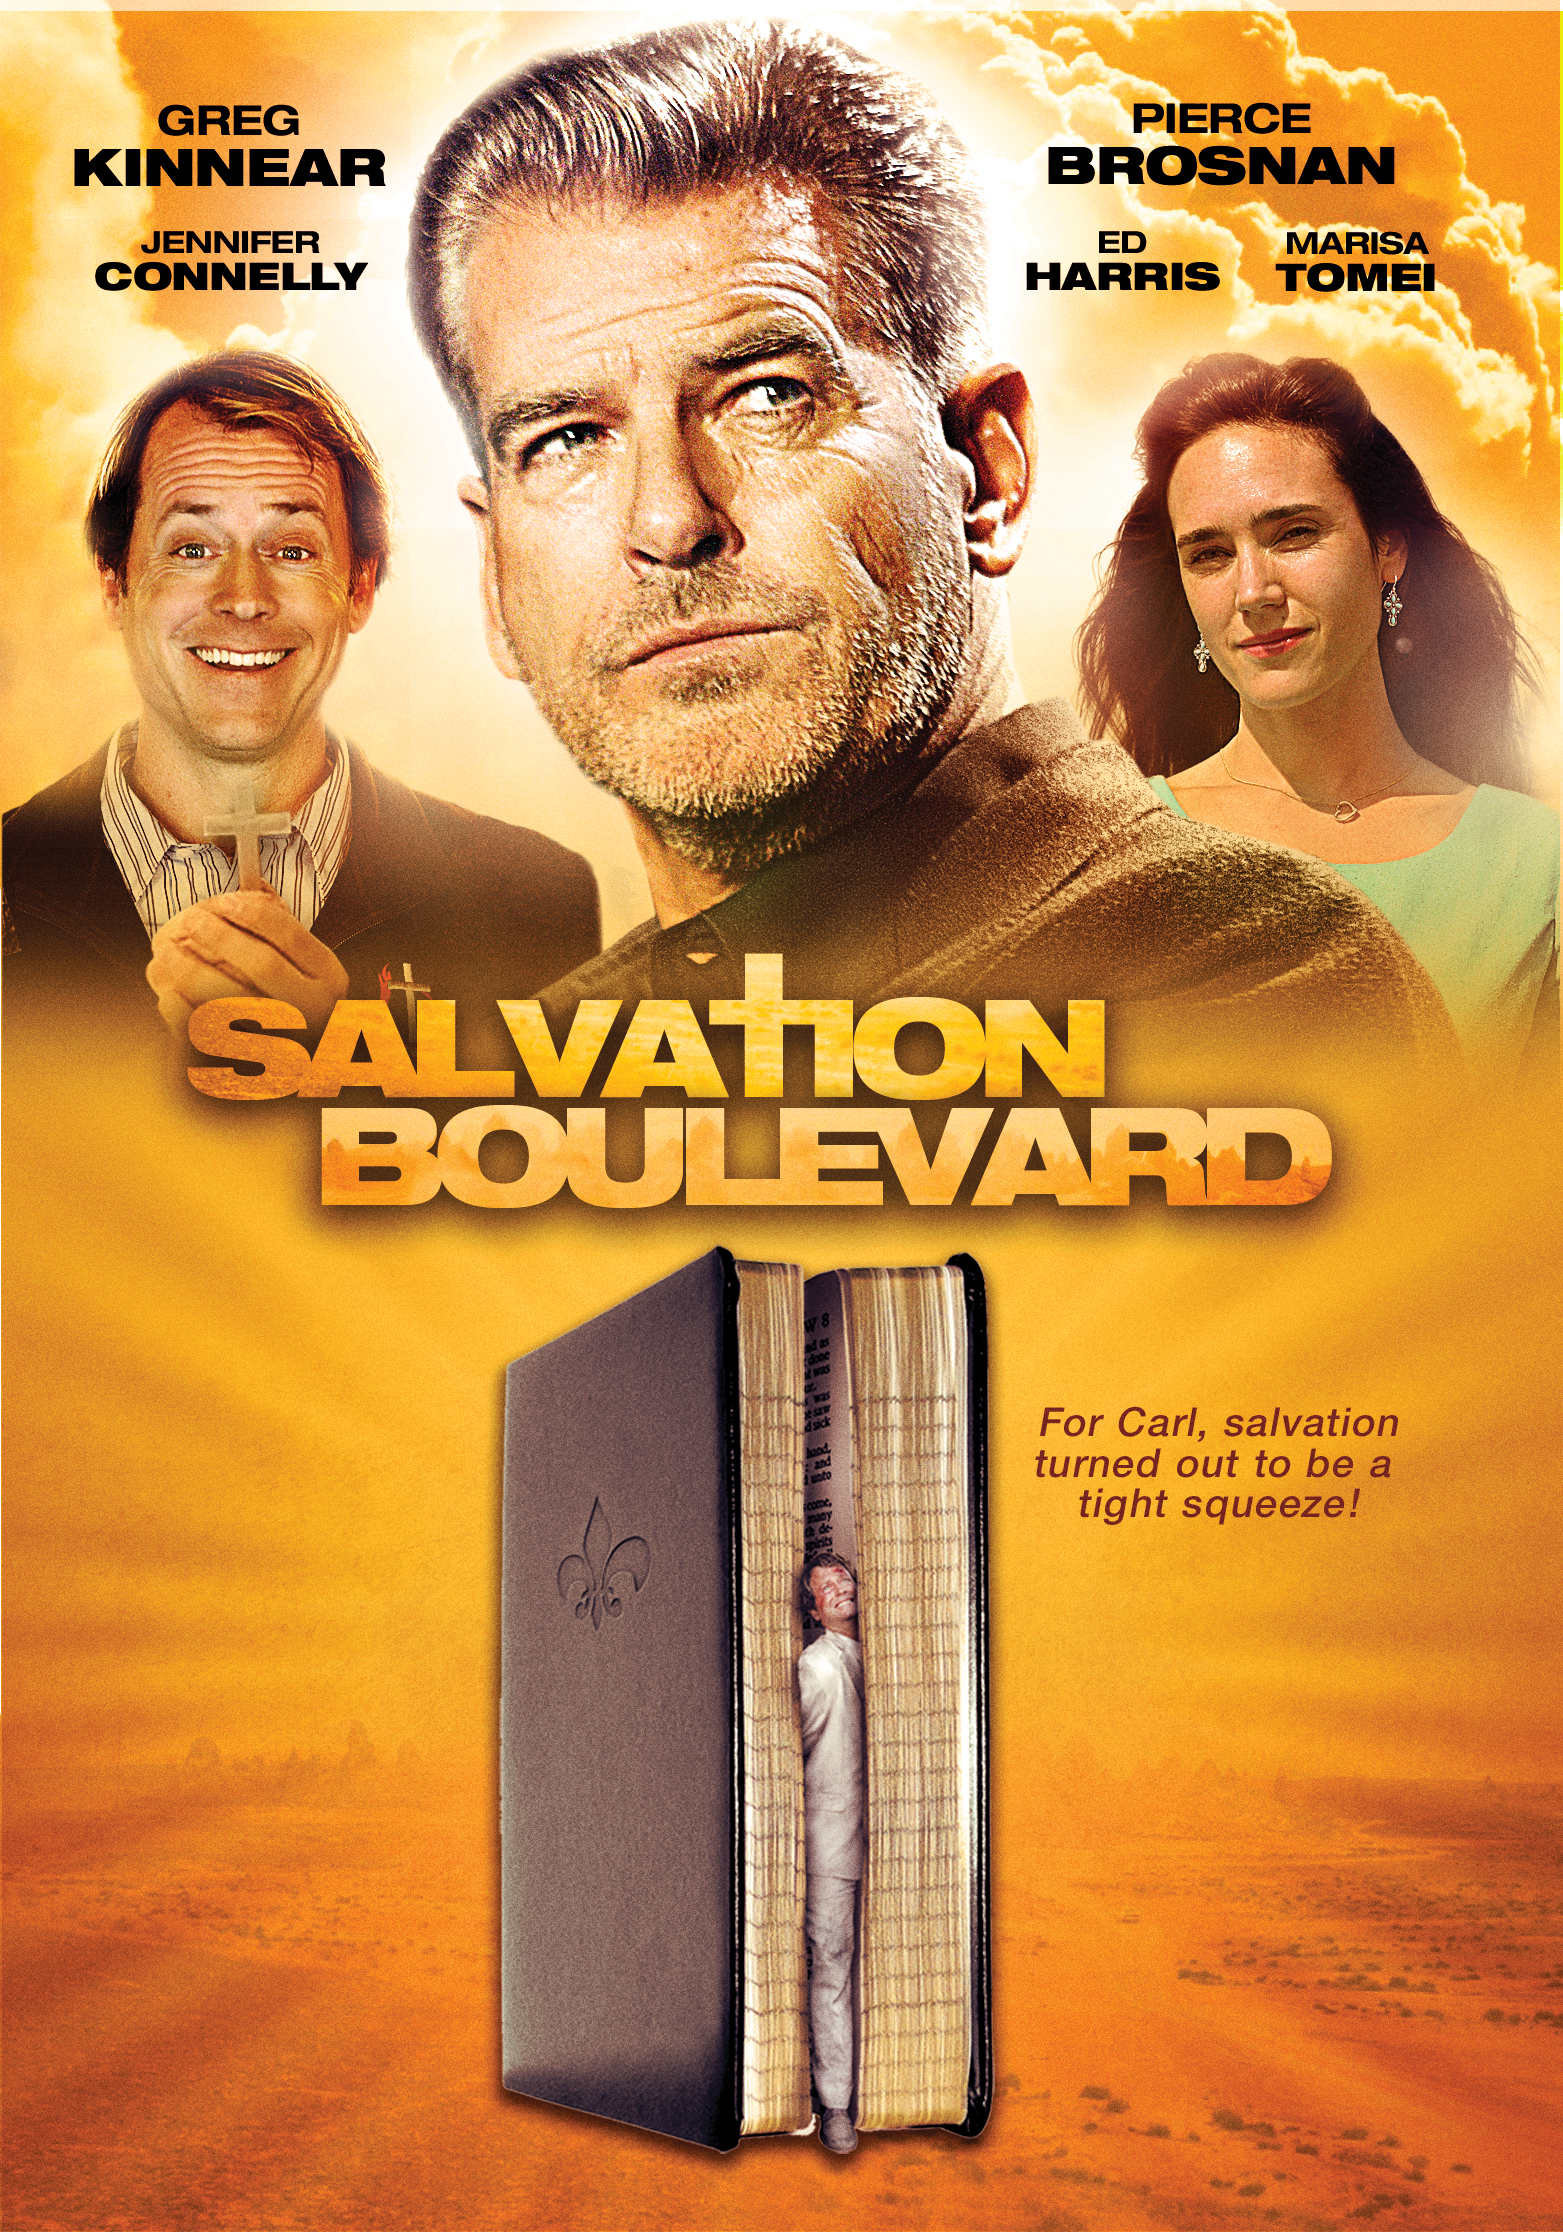 Miniature of movie poster for Salvation Boulevard, shows Pierce Brosnan above looking regal, Greg Kinear and Jennifer Connelly behind him smiling, and a giant bible below, standing upright, in which Greg Kinnear's character is being squeezed and suffocated.